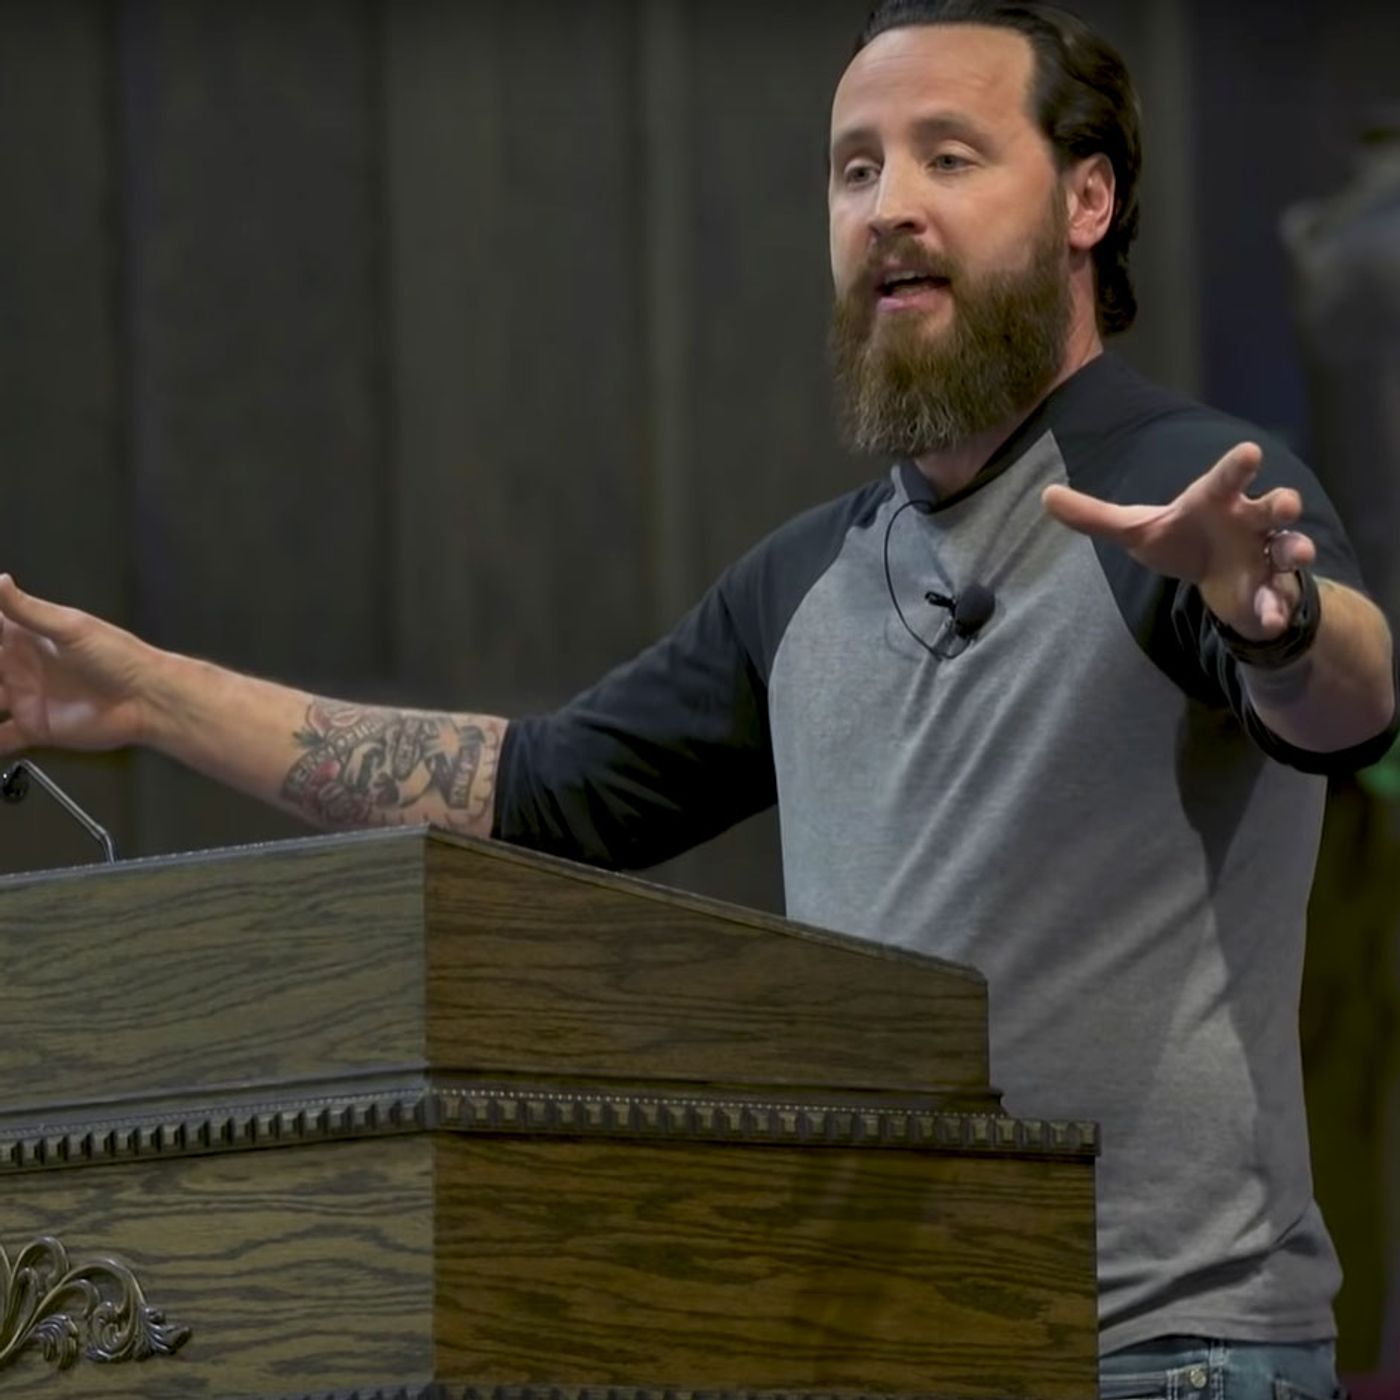 Jeff Durbin and Vulgarity in the Pulpit